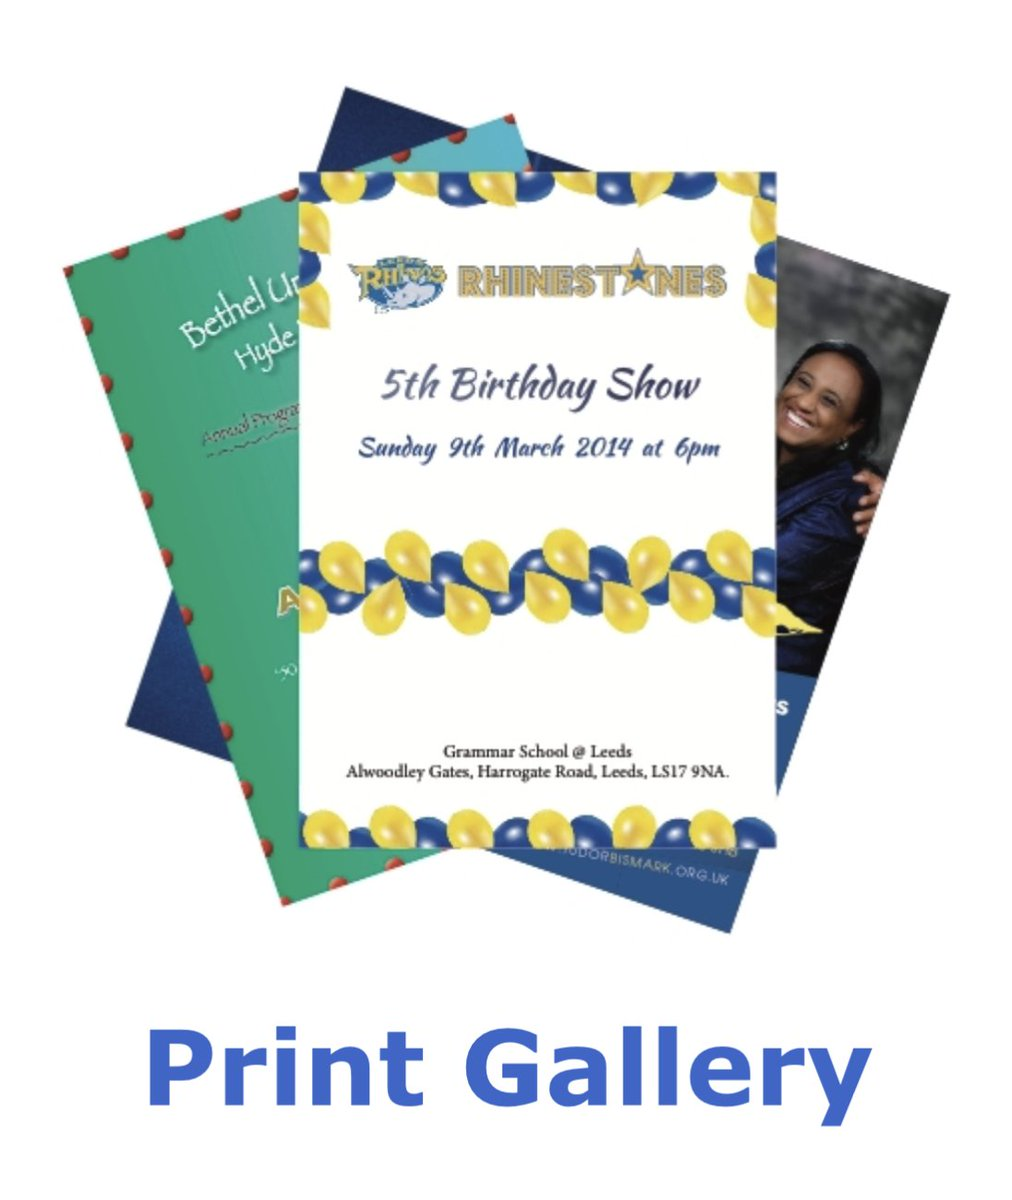 Same Day Printing 4 Same Day Collection. Mon - Fri: 08:00 - 18:00 | Sat & Sun: 08:00 - 16:00. Find out more at:  #sameday #printing #flyers #leaflets #posters #booklets #documents #leeds #wakefield #huddersfield #bradford #york #harrogate #london